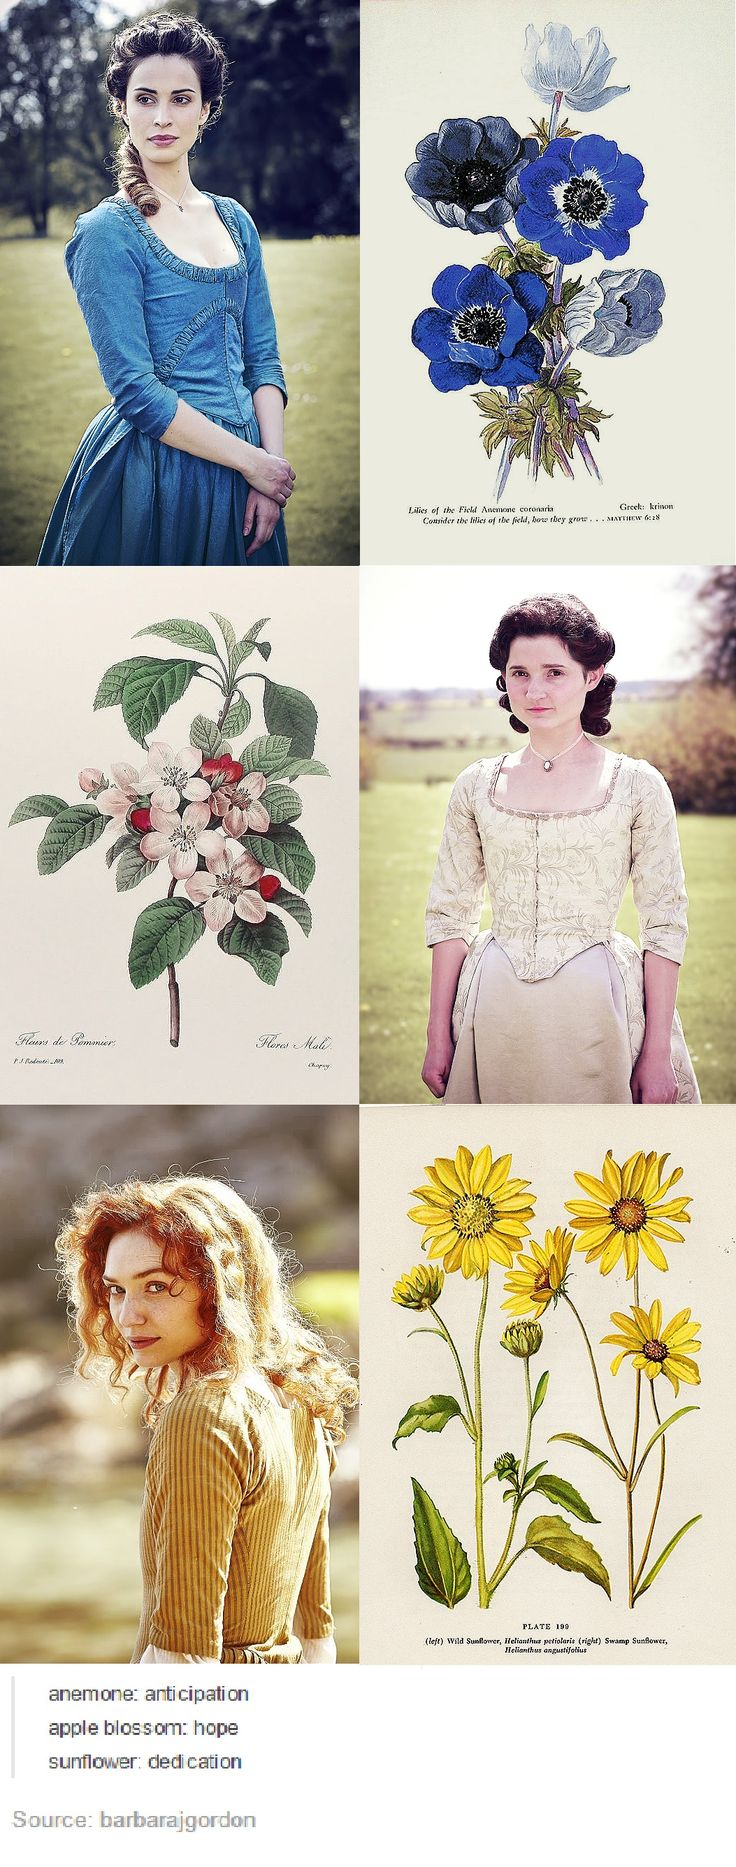 The Women of Poldark